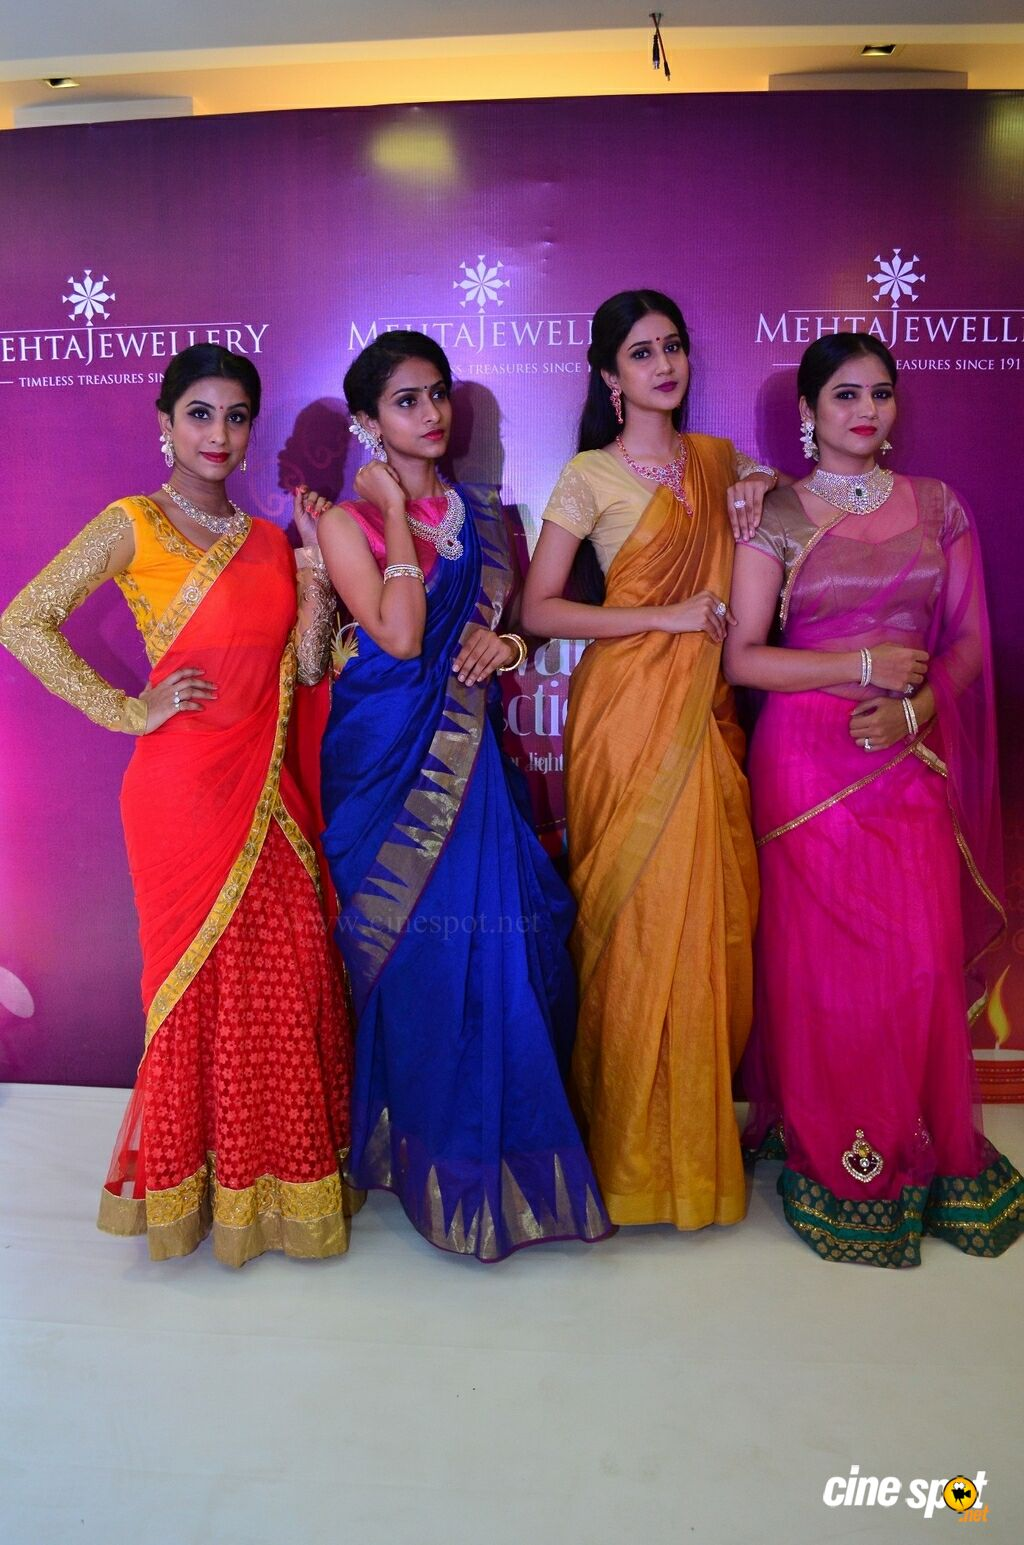 Mehta Jewellery Launches Diwali Bridal Collection (17)